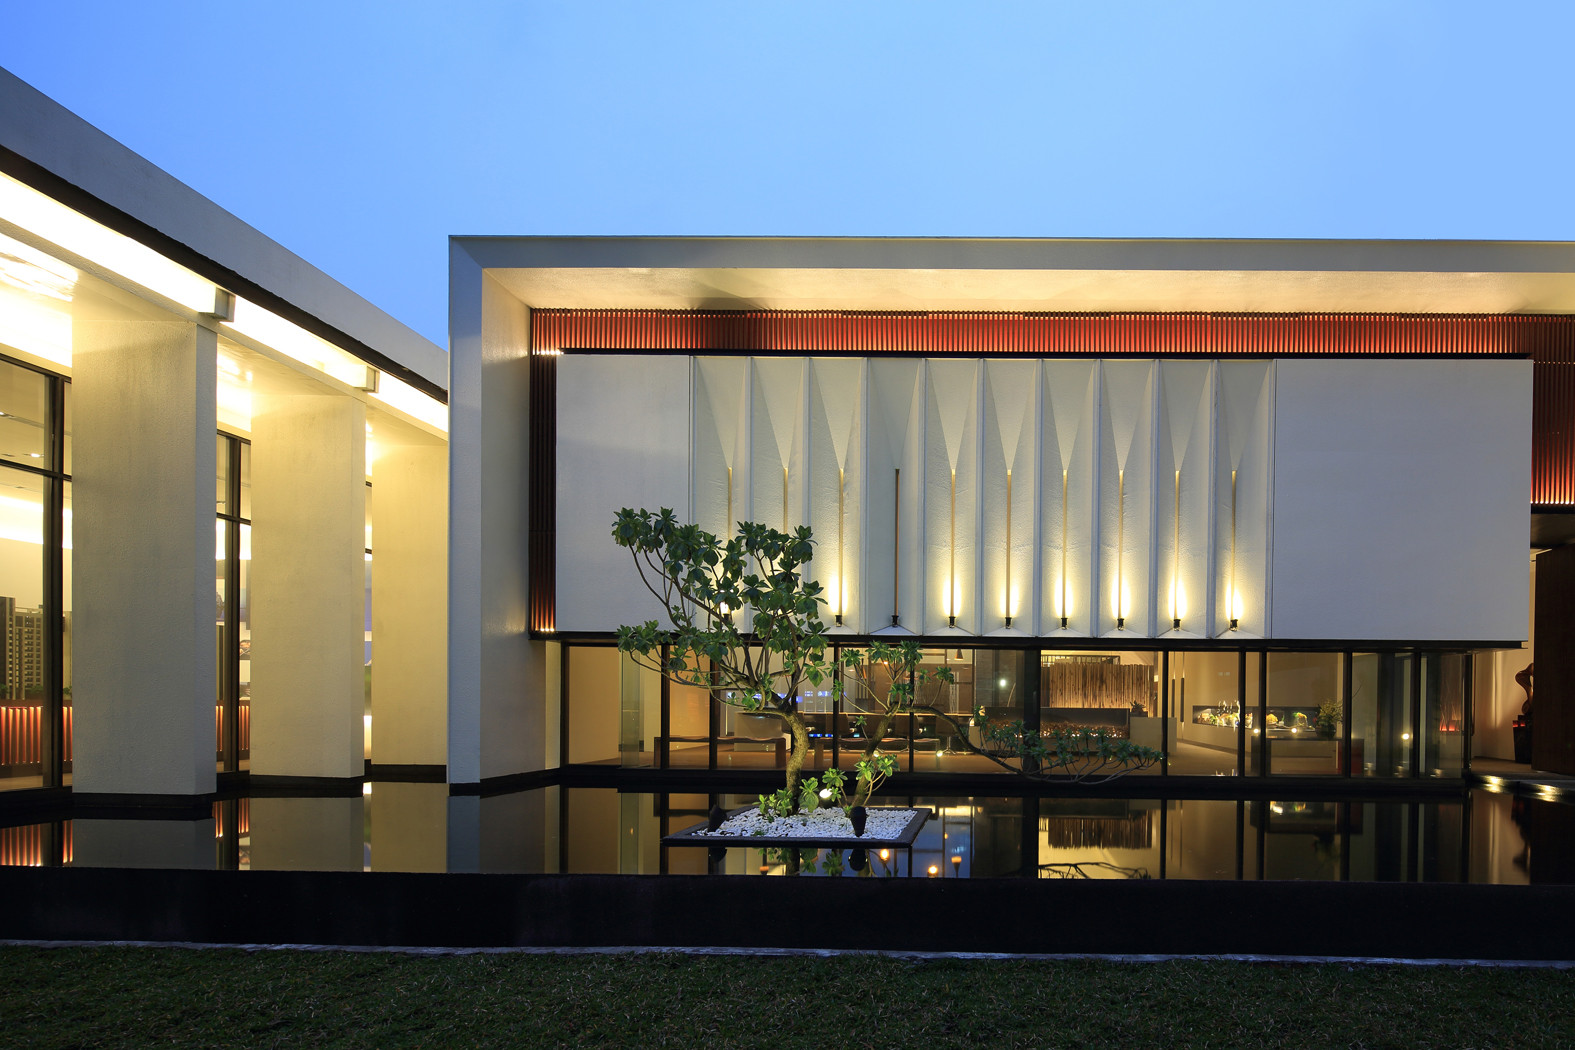 Gallery of exquisite minimalist arcadian architecture for Minimalist hotel design